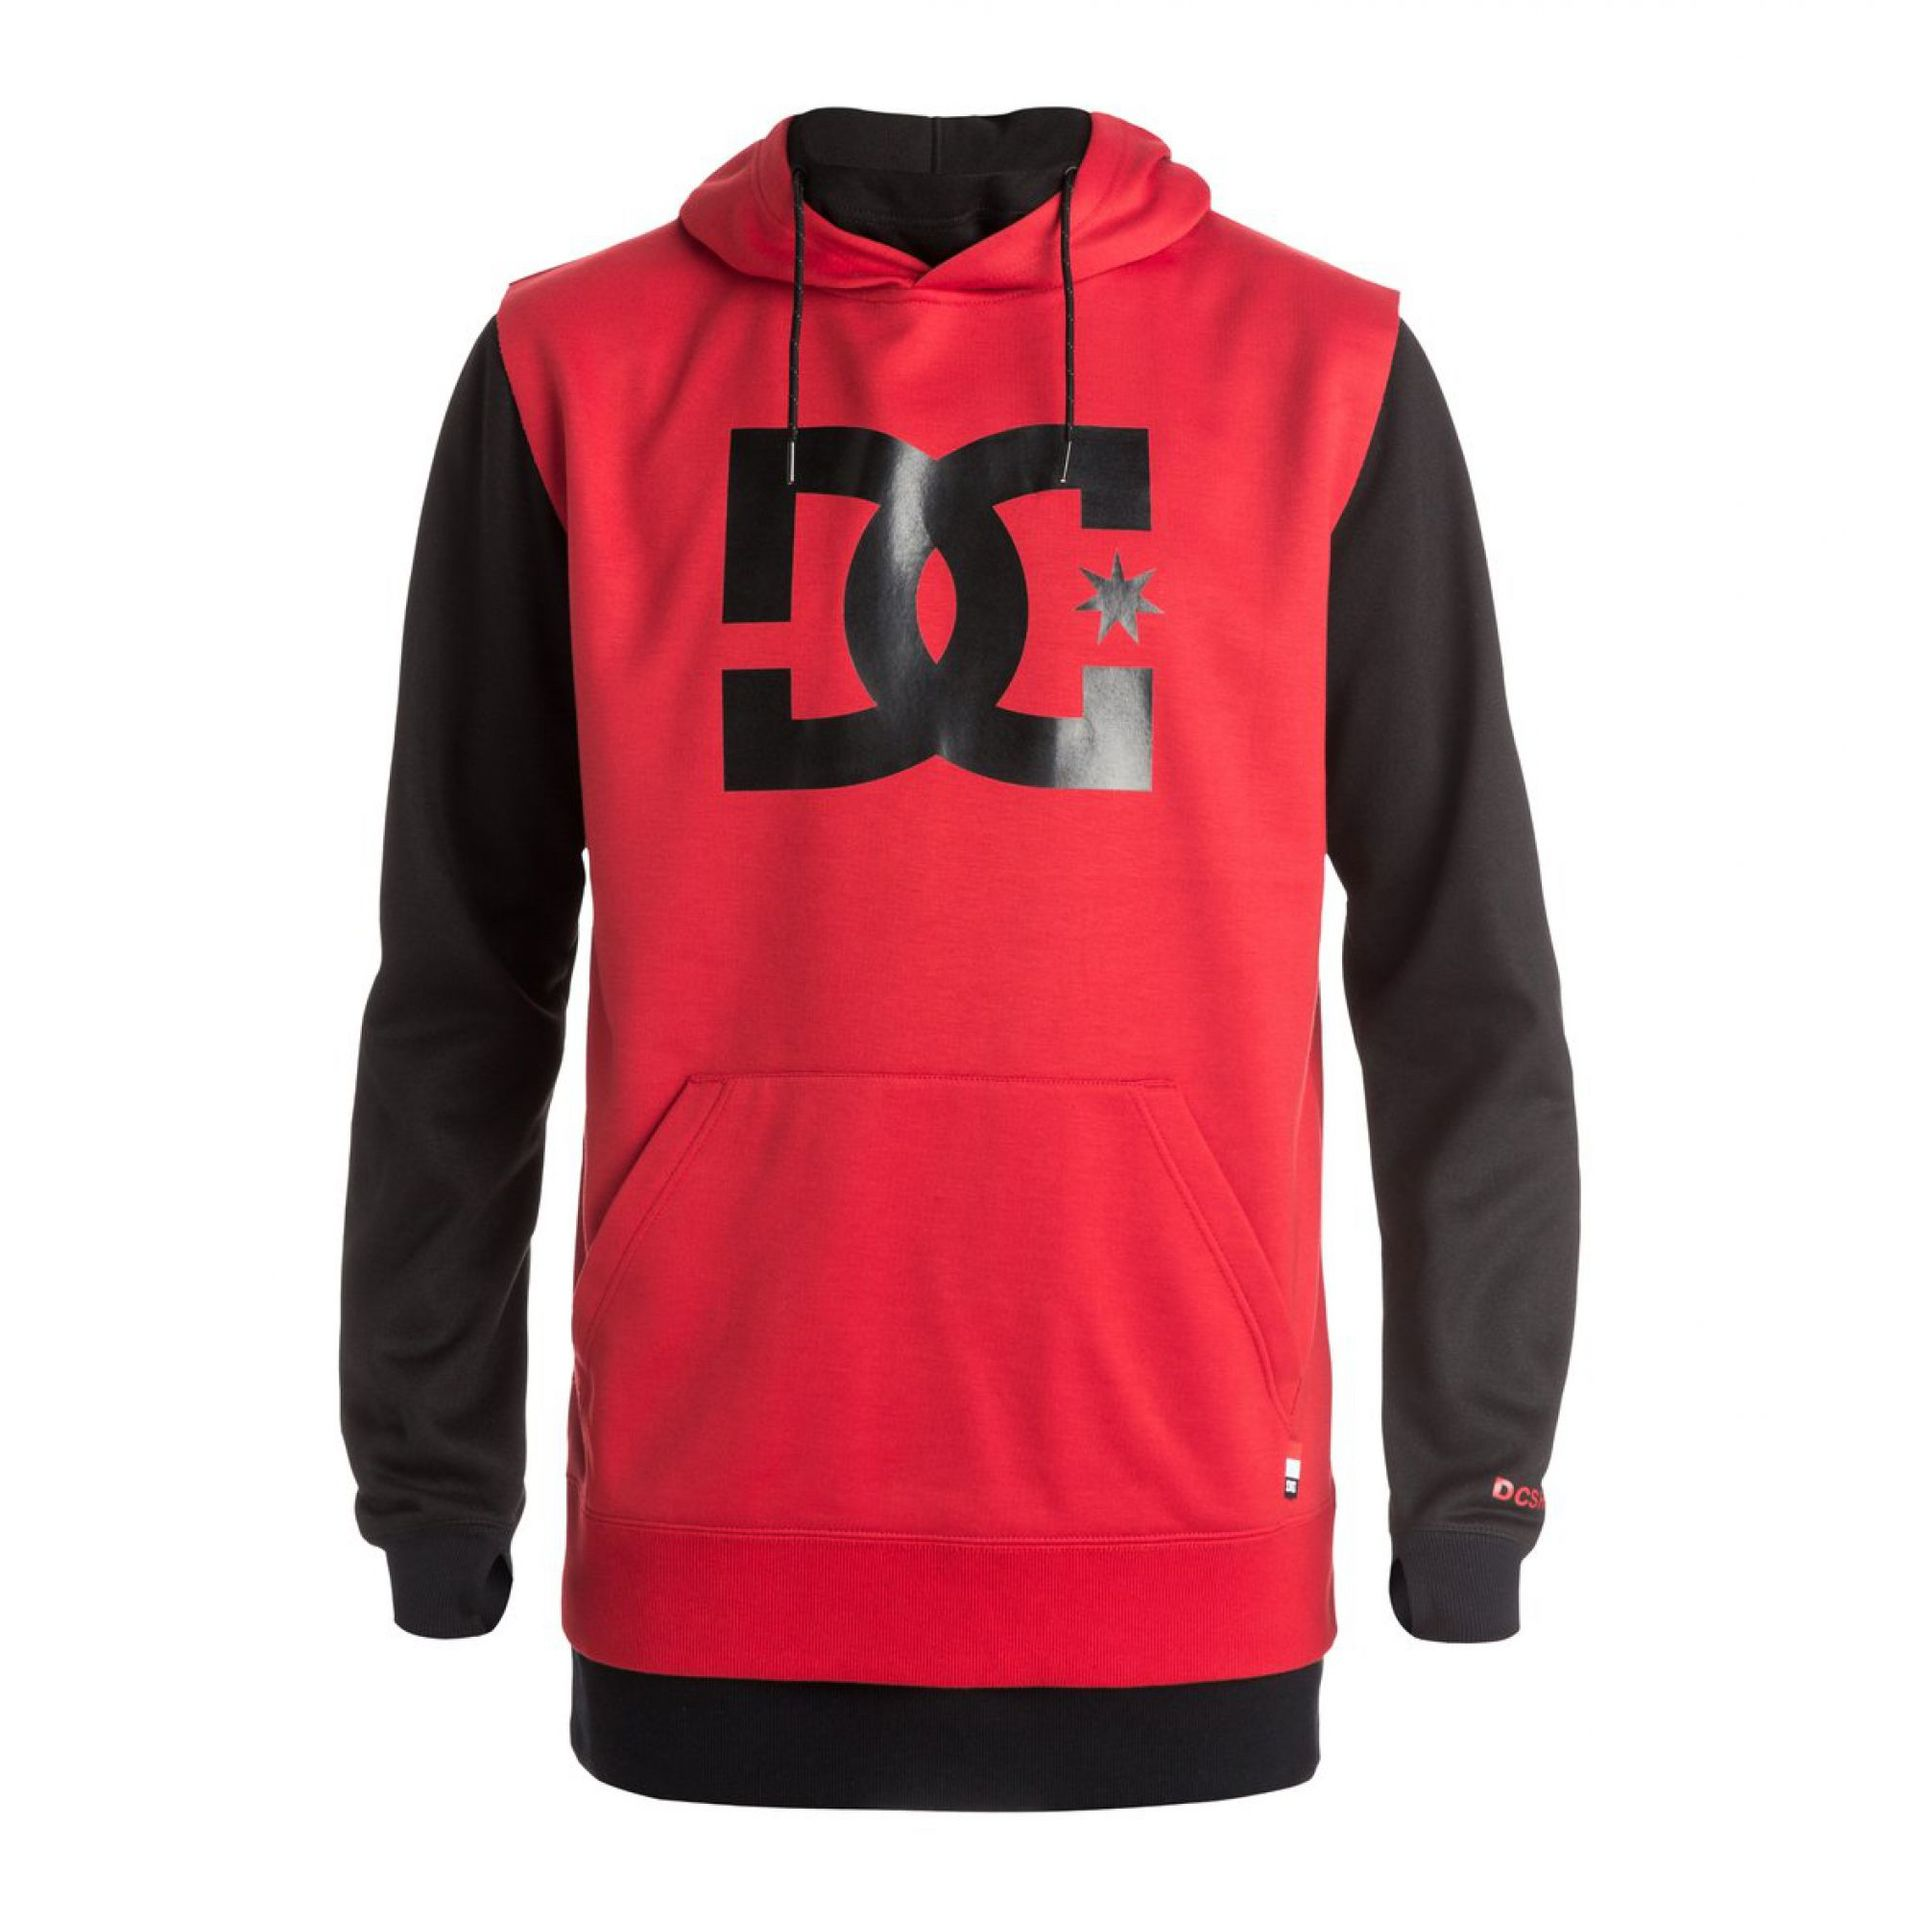 BLUZA DC DRYDEN RACING RED